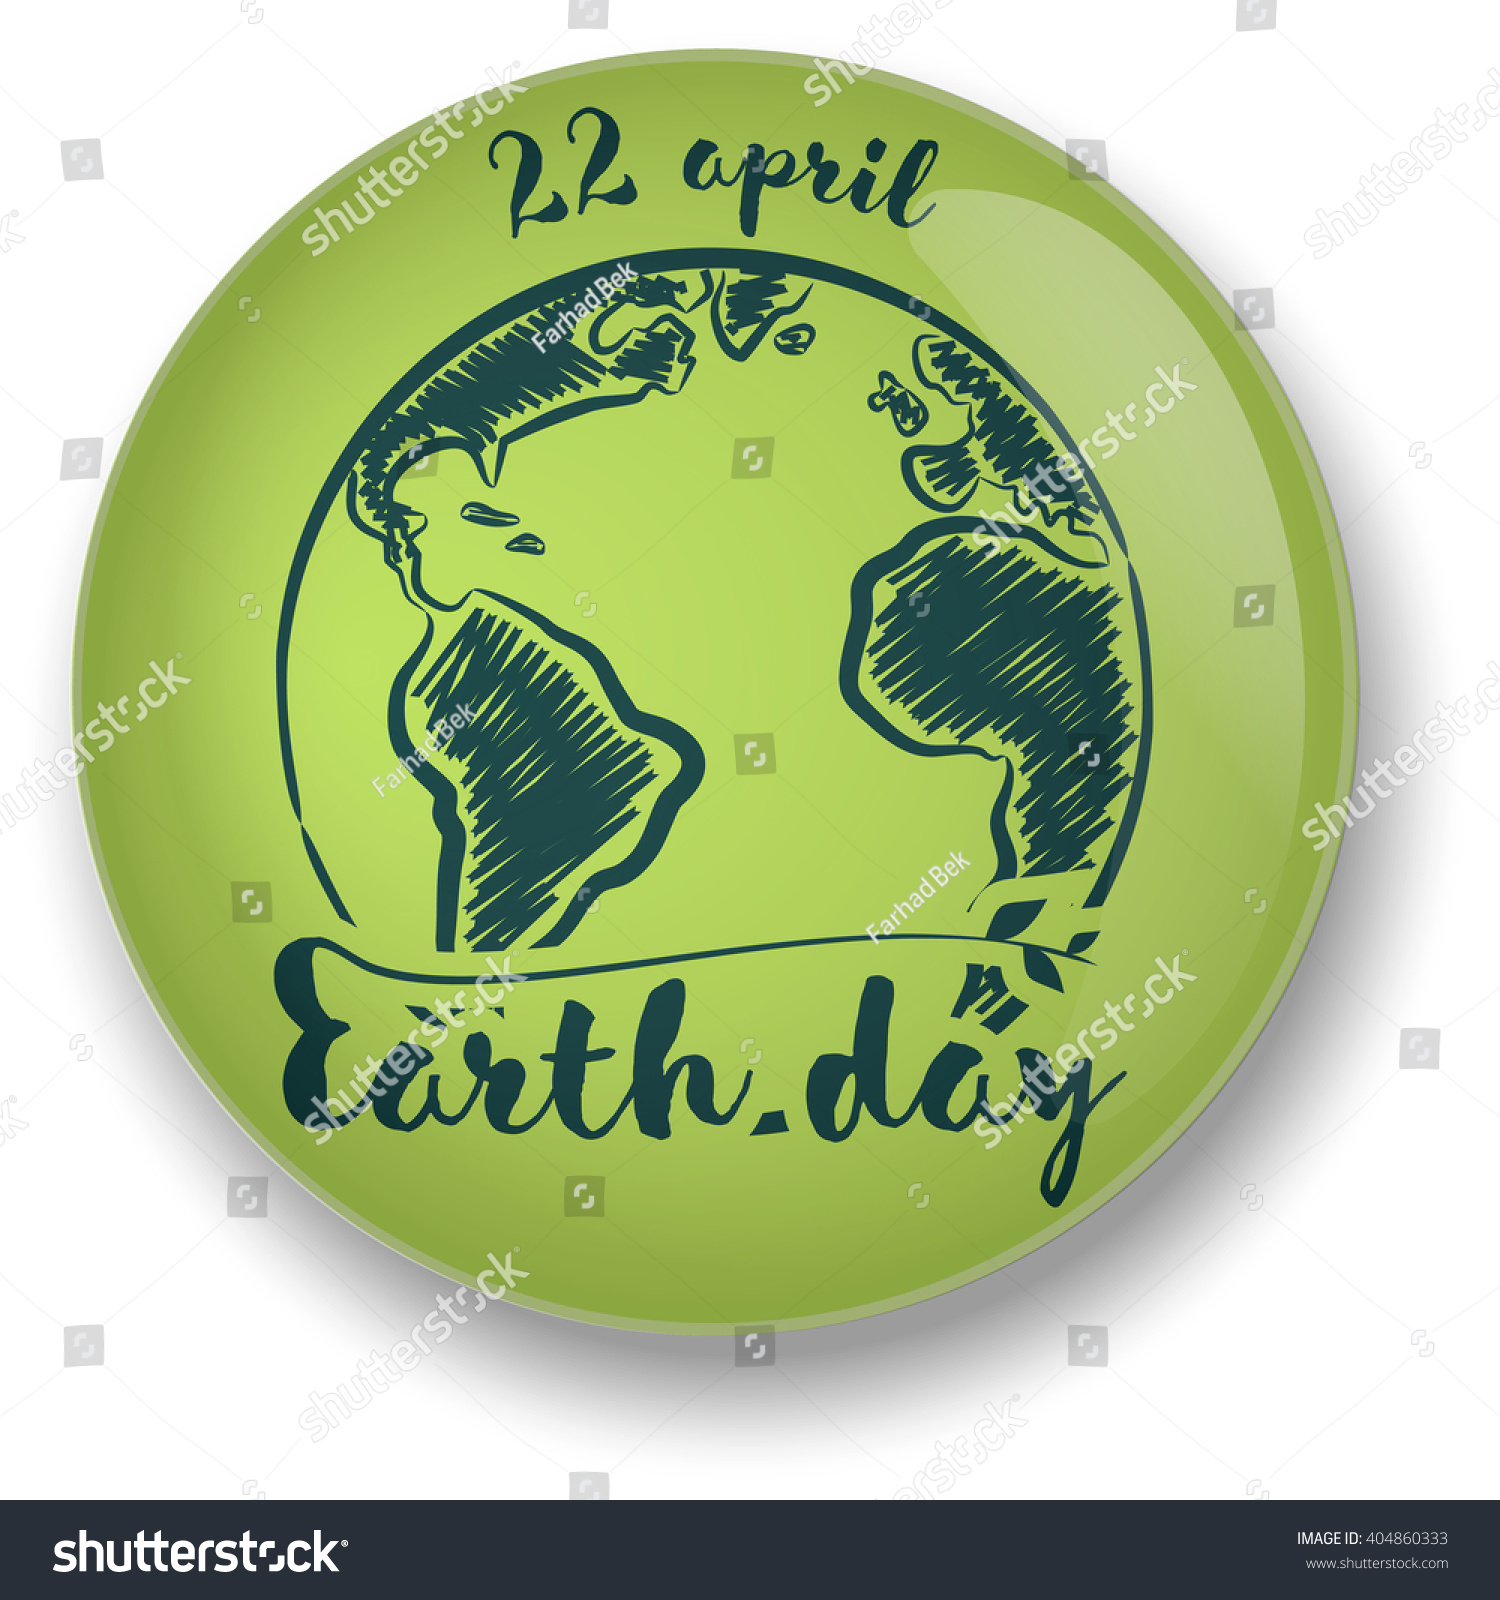 Planet symbol earth day stock vector 404860333 shutterstock planet symbol earth day buycottarizona